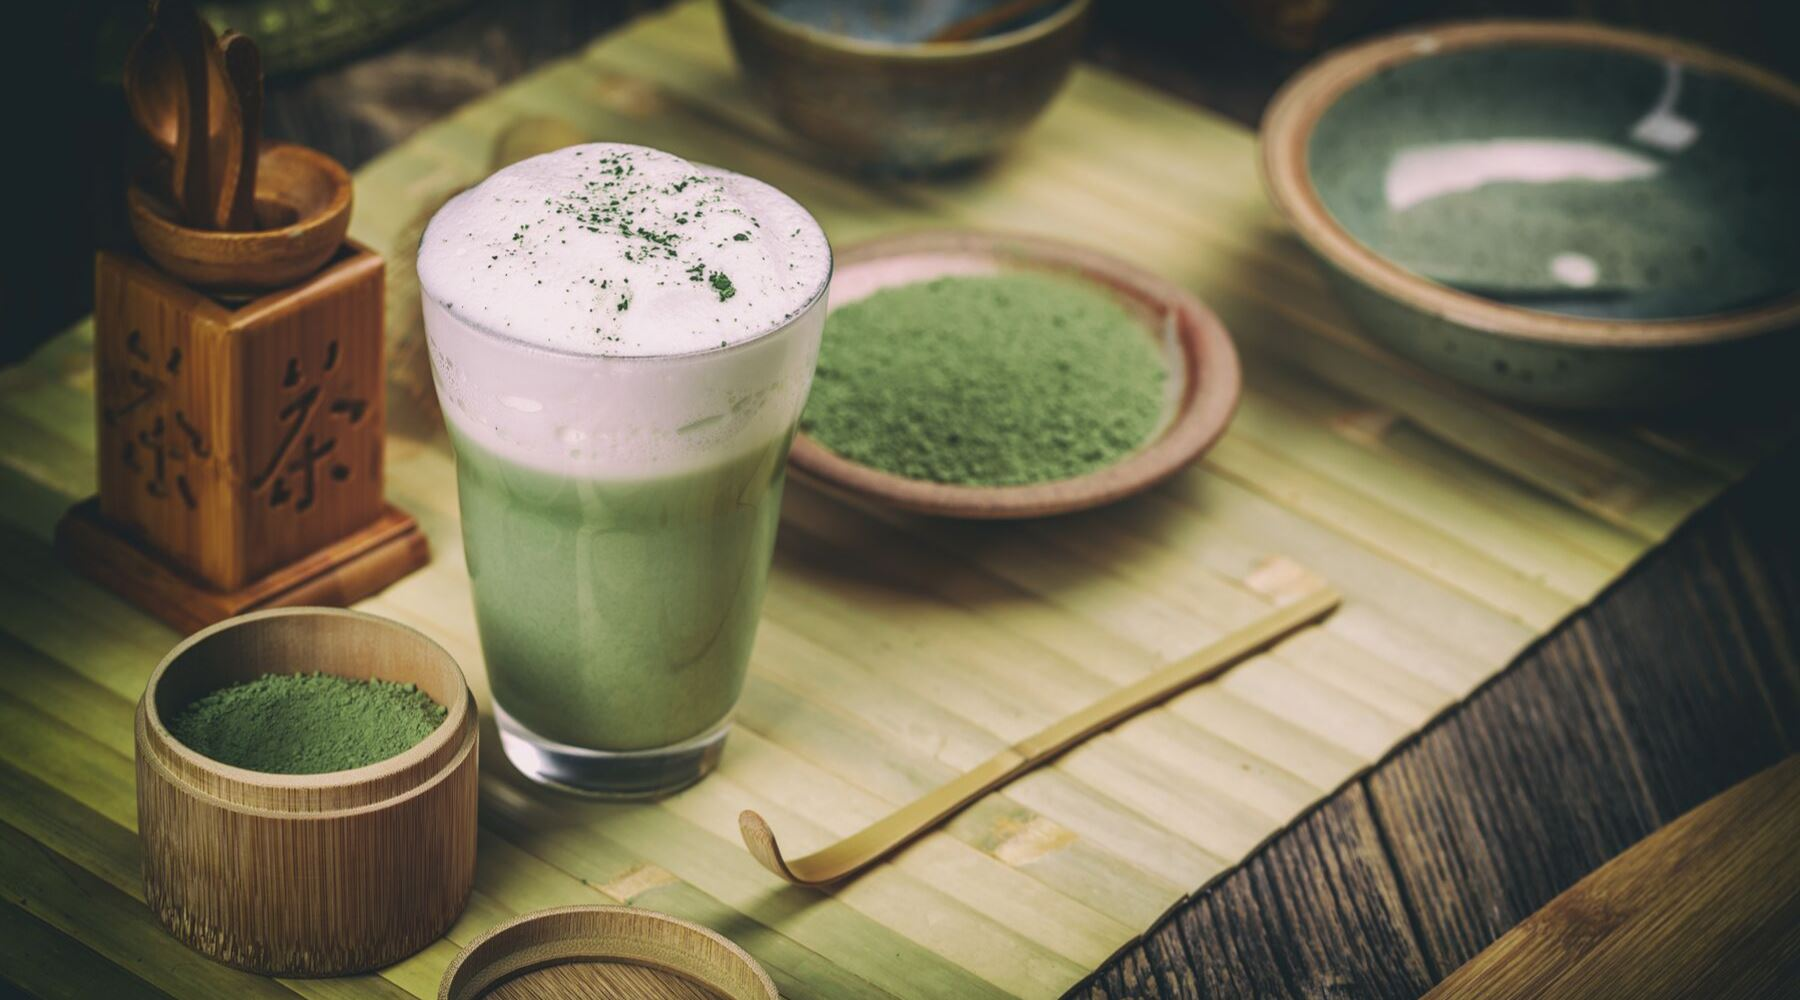 How To Make The Perfect Frothy Matcha Tea